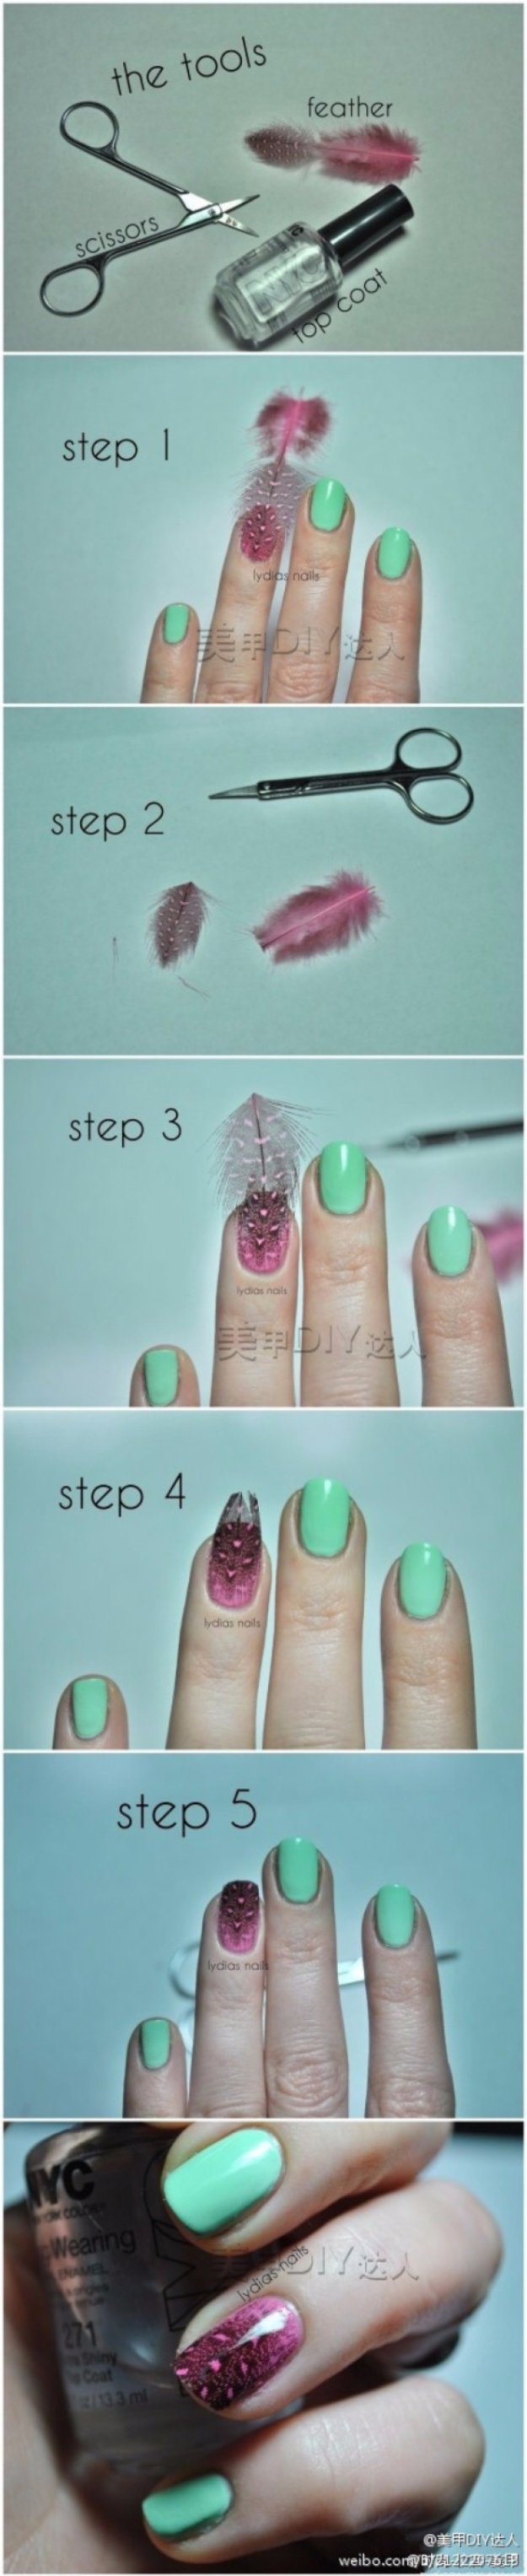 Cool Nail Art Ideas -Easy Feather Texture Nails - - Easy Nail Art Tutorials - Fun and Easy DIY Nail Designs - Step By Step Tutorials and Instructions for Manicures at Home